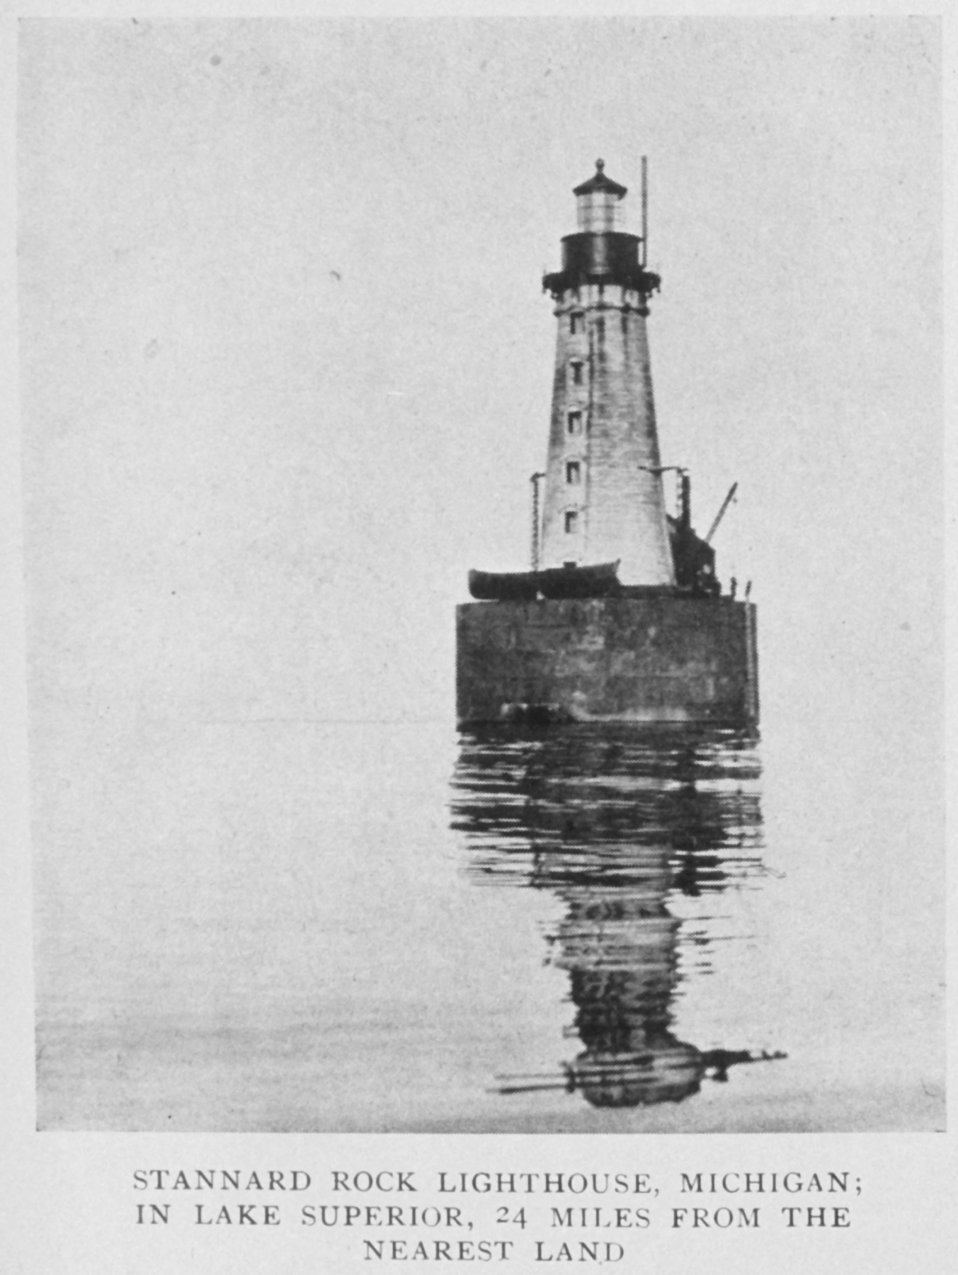 Stannard Rock Lighthouse, Michigan; in Lake Superior, 24 miles from the nearest land.  In: 'Lighthouses and Lightships of the United States' by George R. Putnam , p. 158, 1917.  Houghton Mifflin and Company, Boston. Library Call No. 527.7 P98.